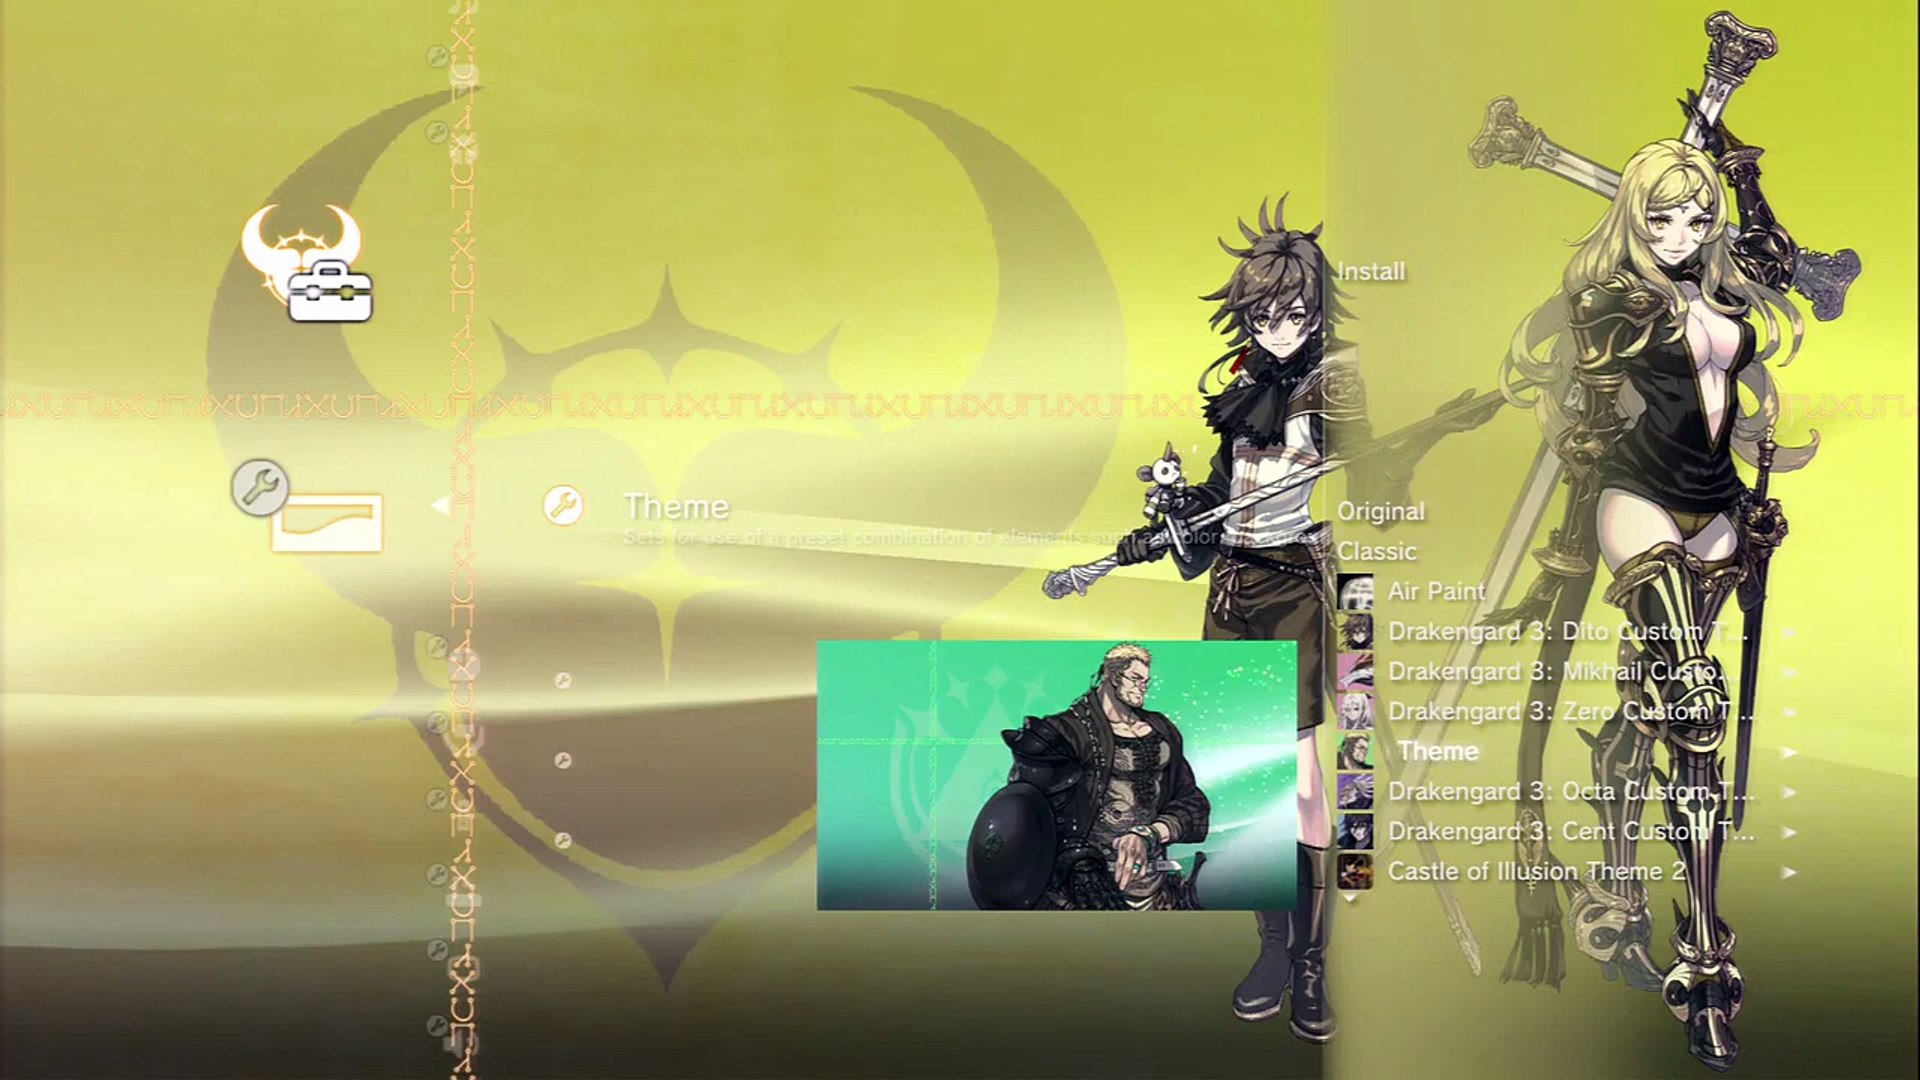 Decadus Ps3 Preorder Theme 3rd Wave Bonus Drakengard 3 Five Theme 1374386 Hd Wallpaper Backgrounds Download Two, three, four, and five conjure a shield using their song to protect one from michael's fire in the prologue. decadus ps3 preorder theme 3rd wave